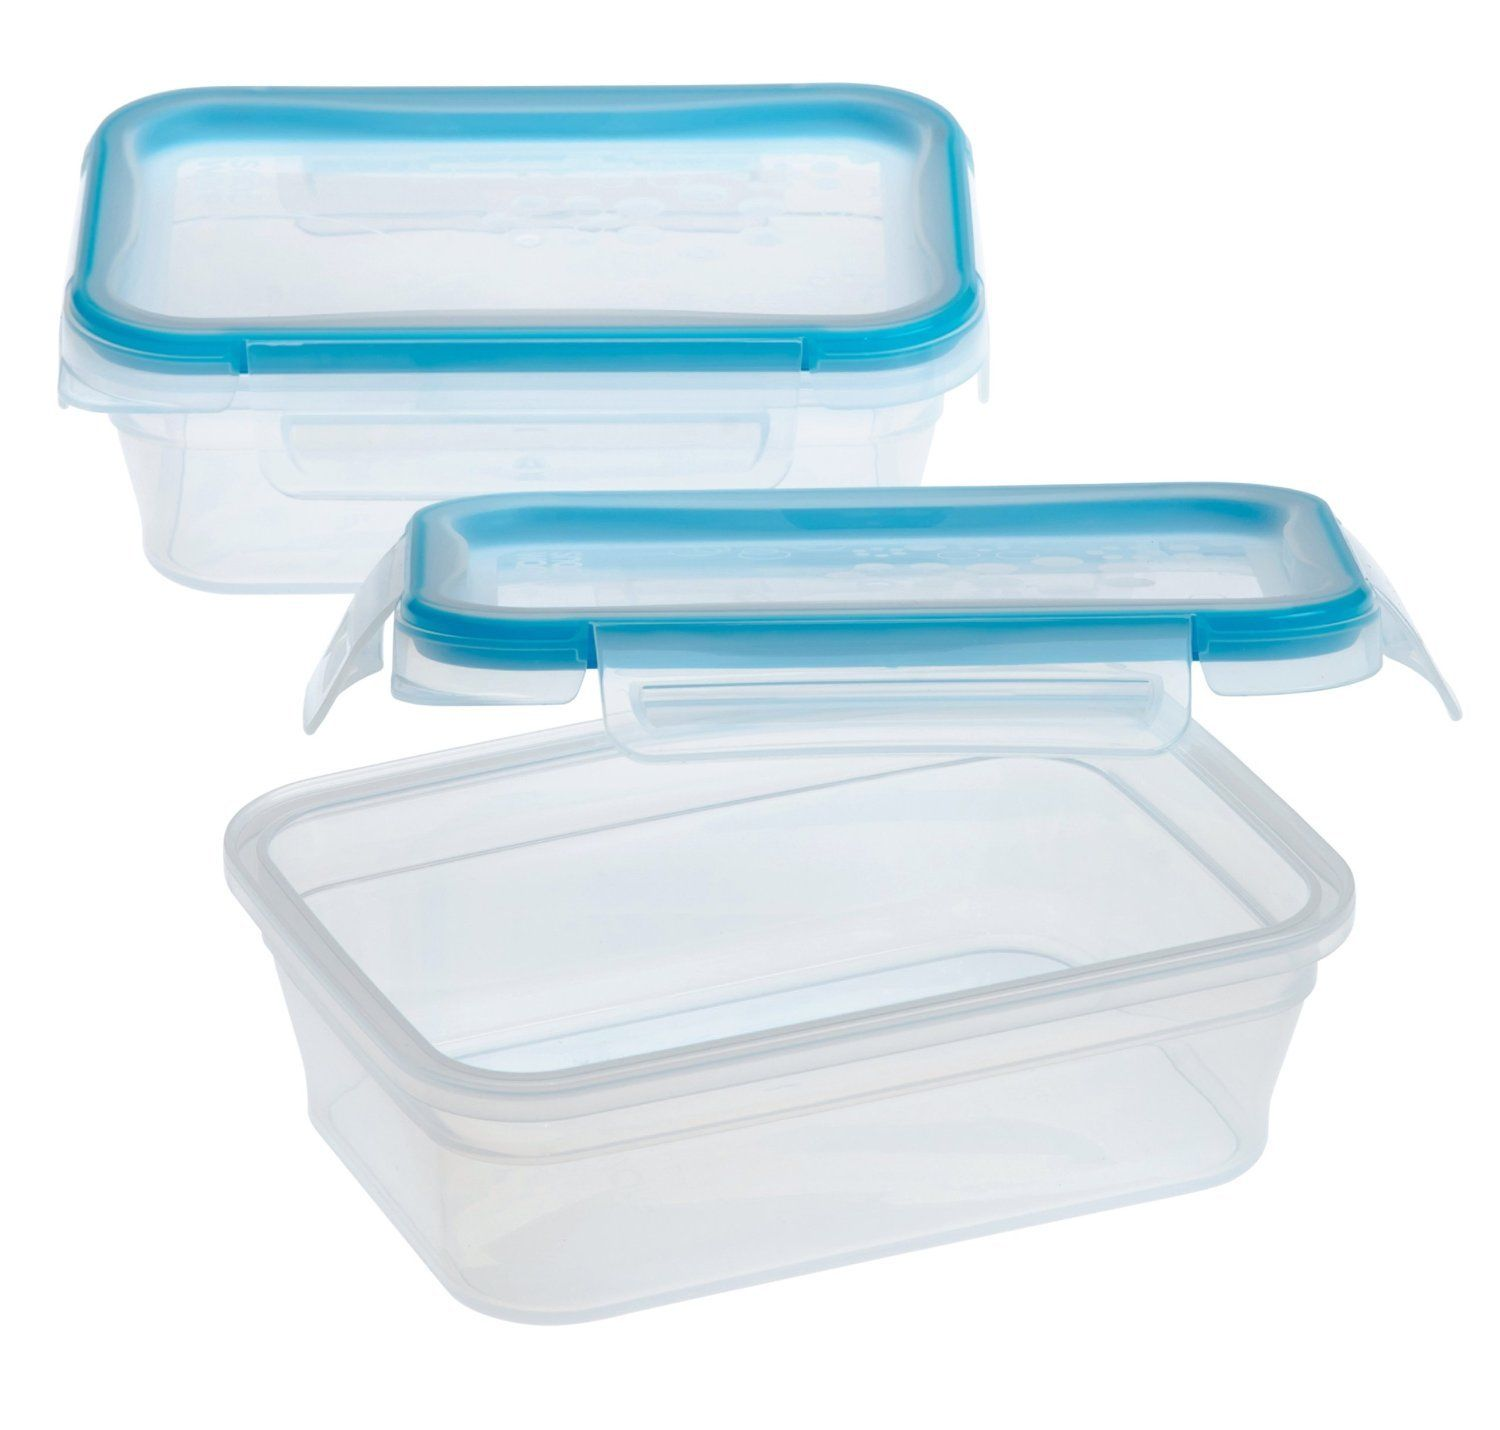 Snapware Total Solution 3-Cup Rectangular Plastic Food Storage Container, 2-Pack 1